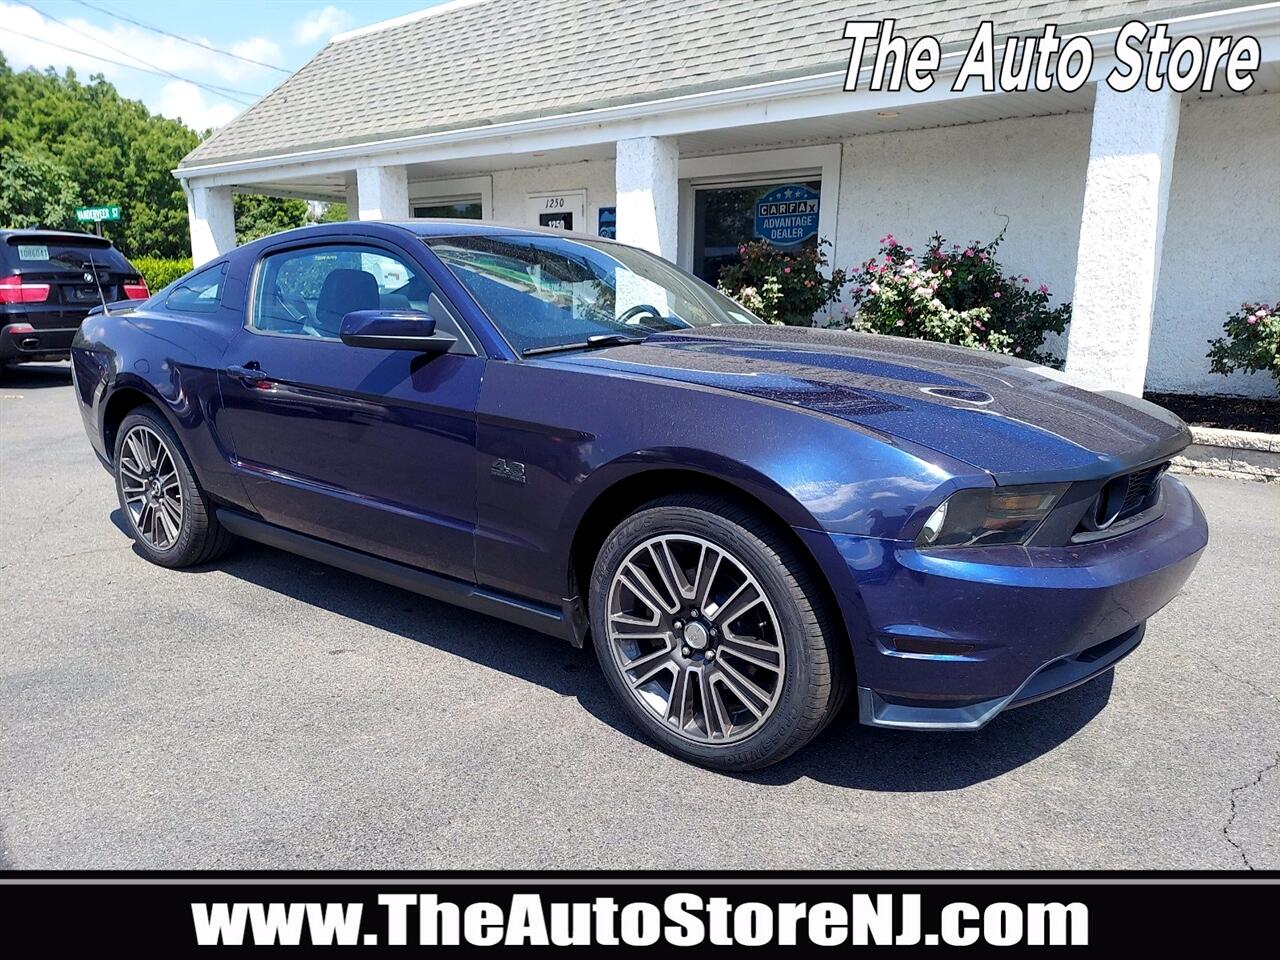 Ford Mustang GT Coupe 2010